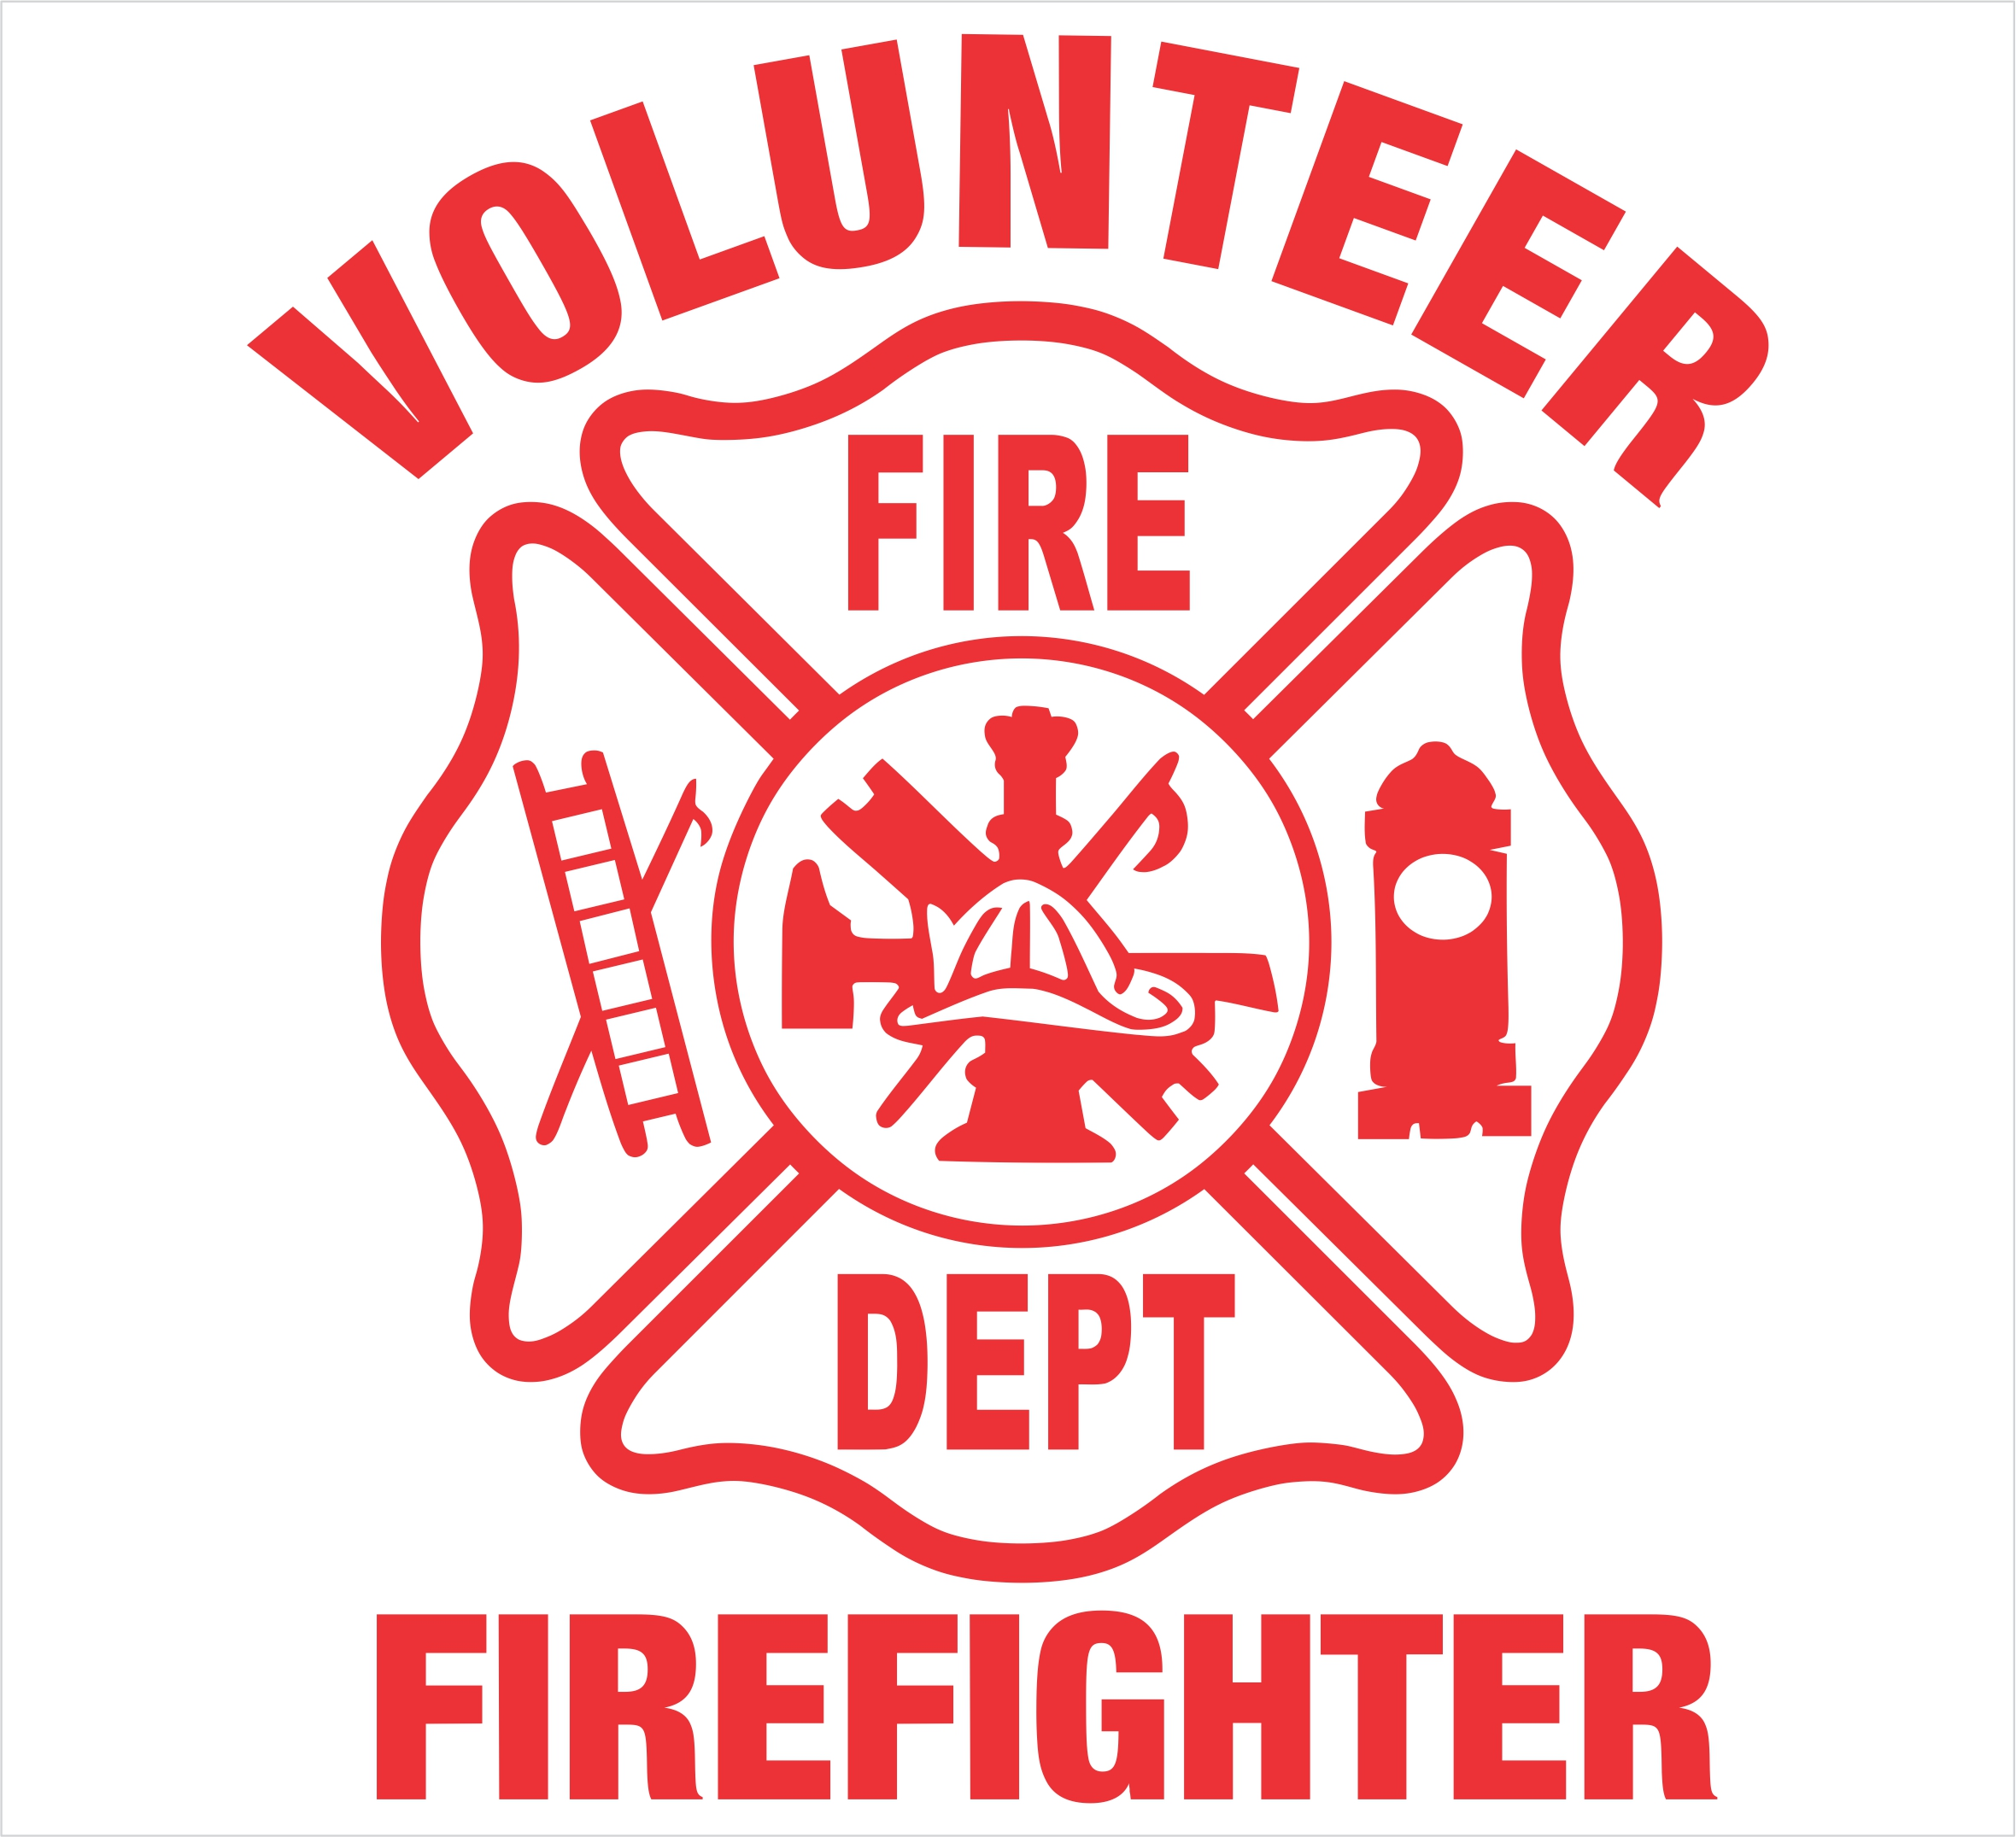 free clipart images fire department - photo #48